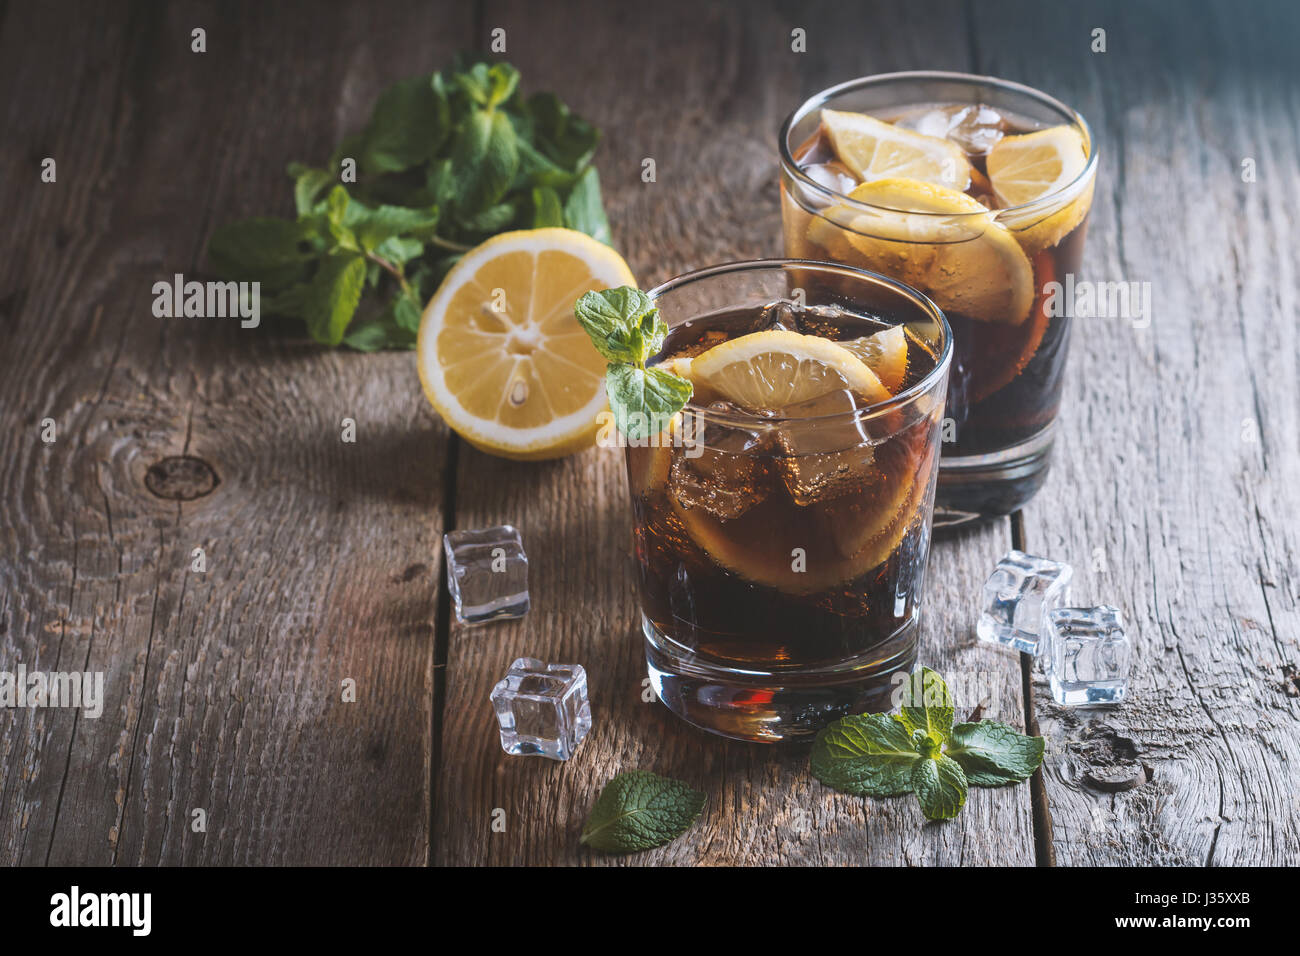 Cuba Libre Cocktail Cuba Libre Cocktail Stock Photos And Cuba Libre Cocktail